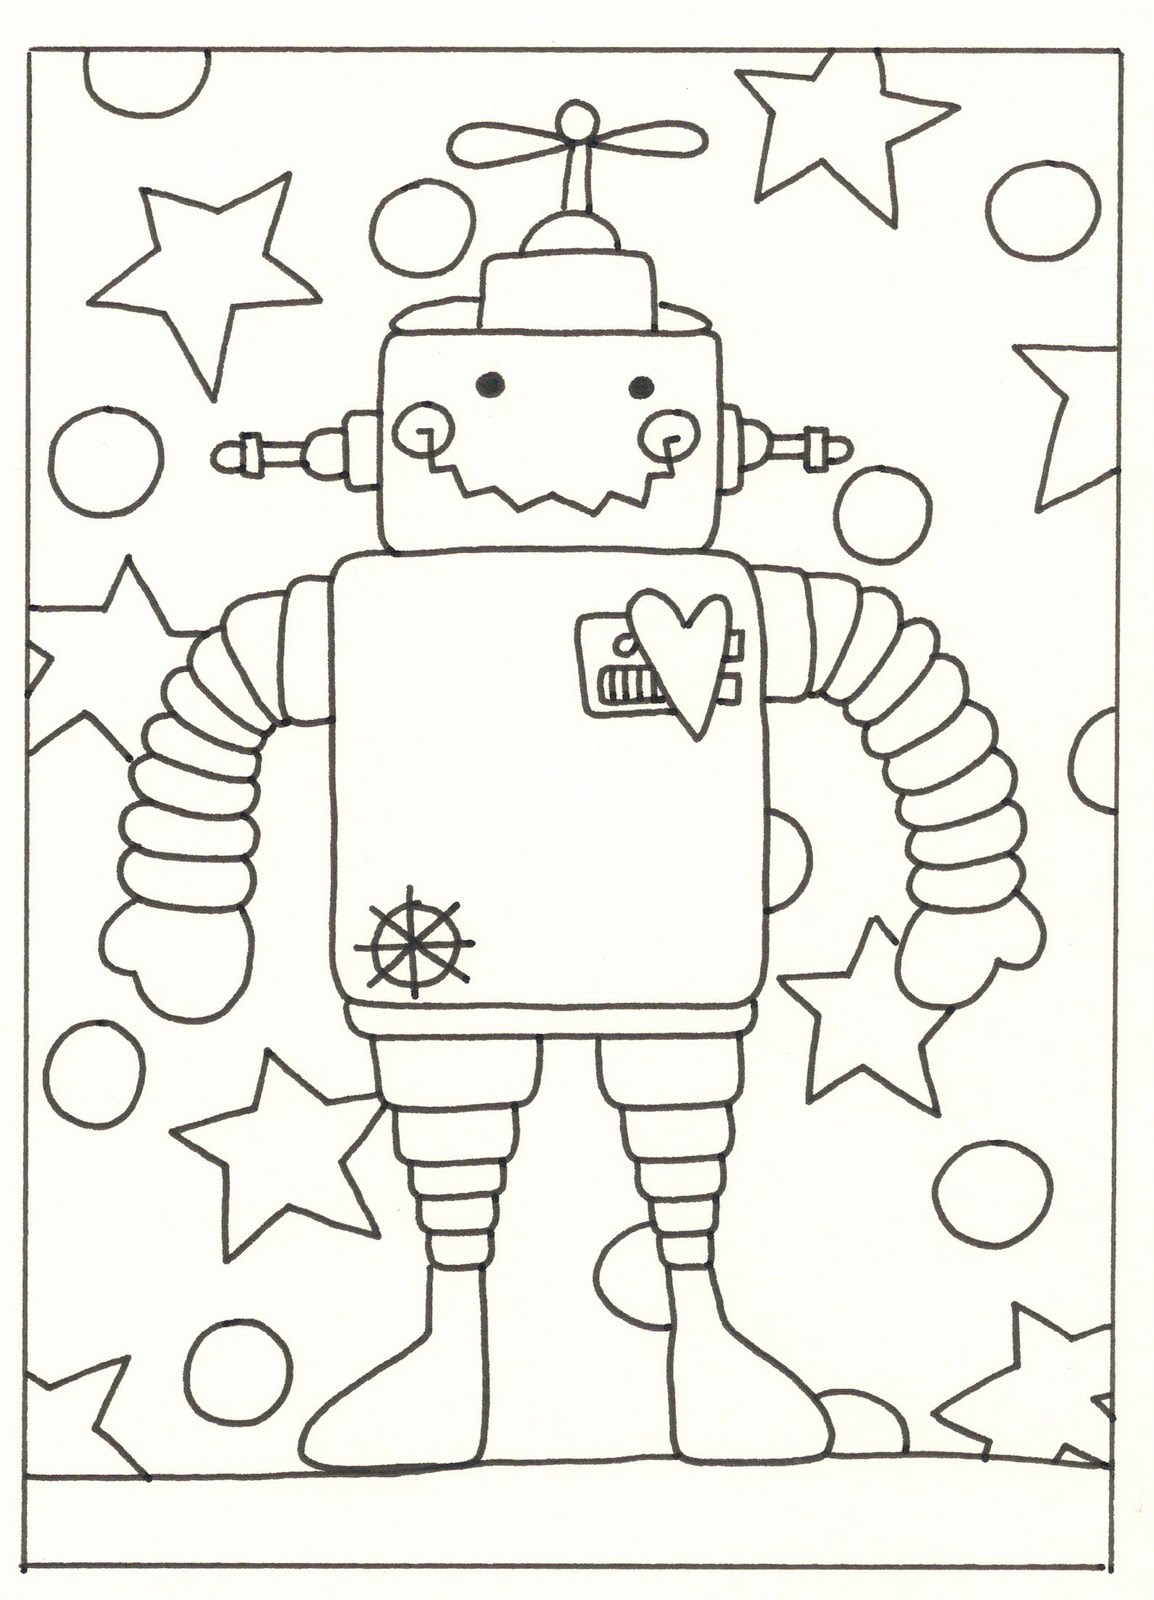 i am special coloring pages - photo #9